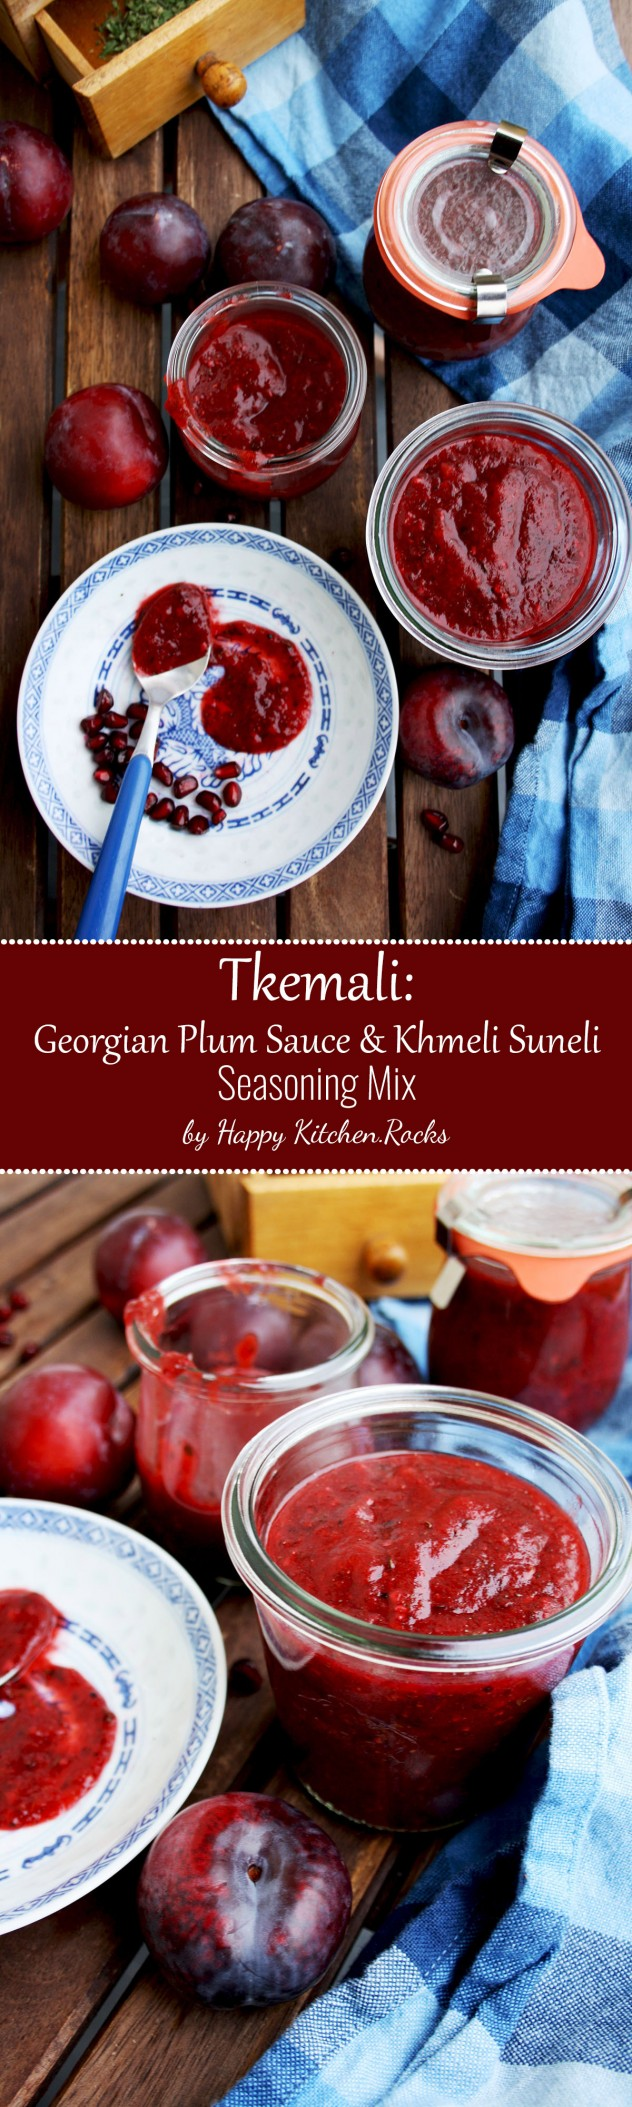 Tkemali is a very flavorful and nutrient-dense Georgian plum sauce that is a great healthier alternative to ketchup or cranberry sauce. Use this sweet-sour vibrant condiment for almost about everything: grilled food, roasted veggies, burgers, potato wedges, any kind of protein, in salad dressings, as a bread spread and so much more!